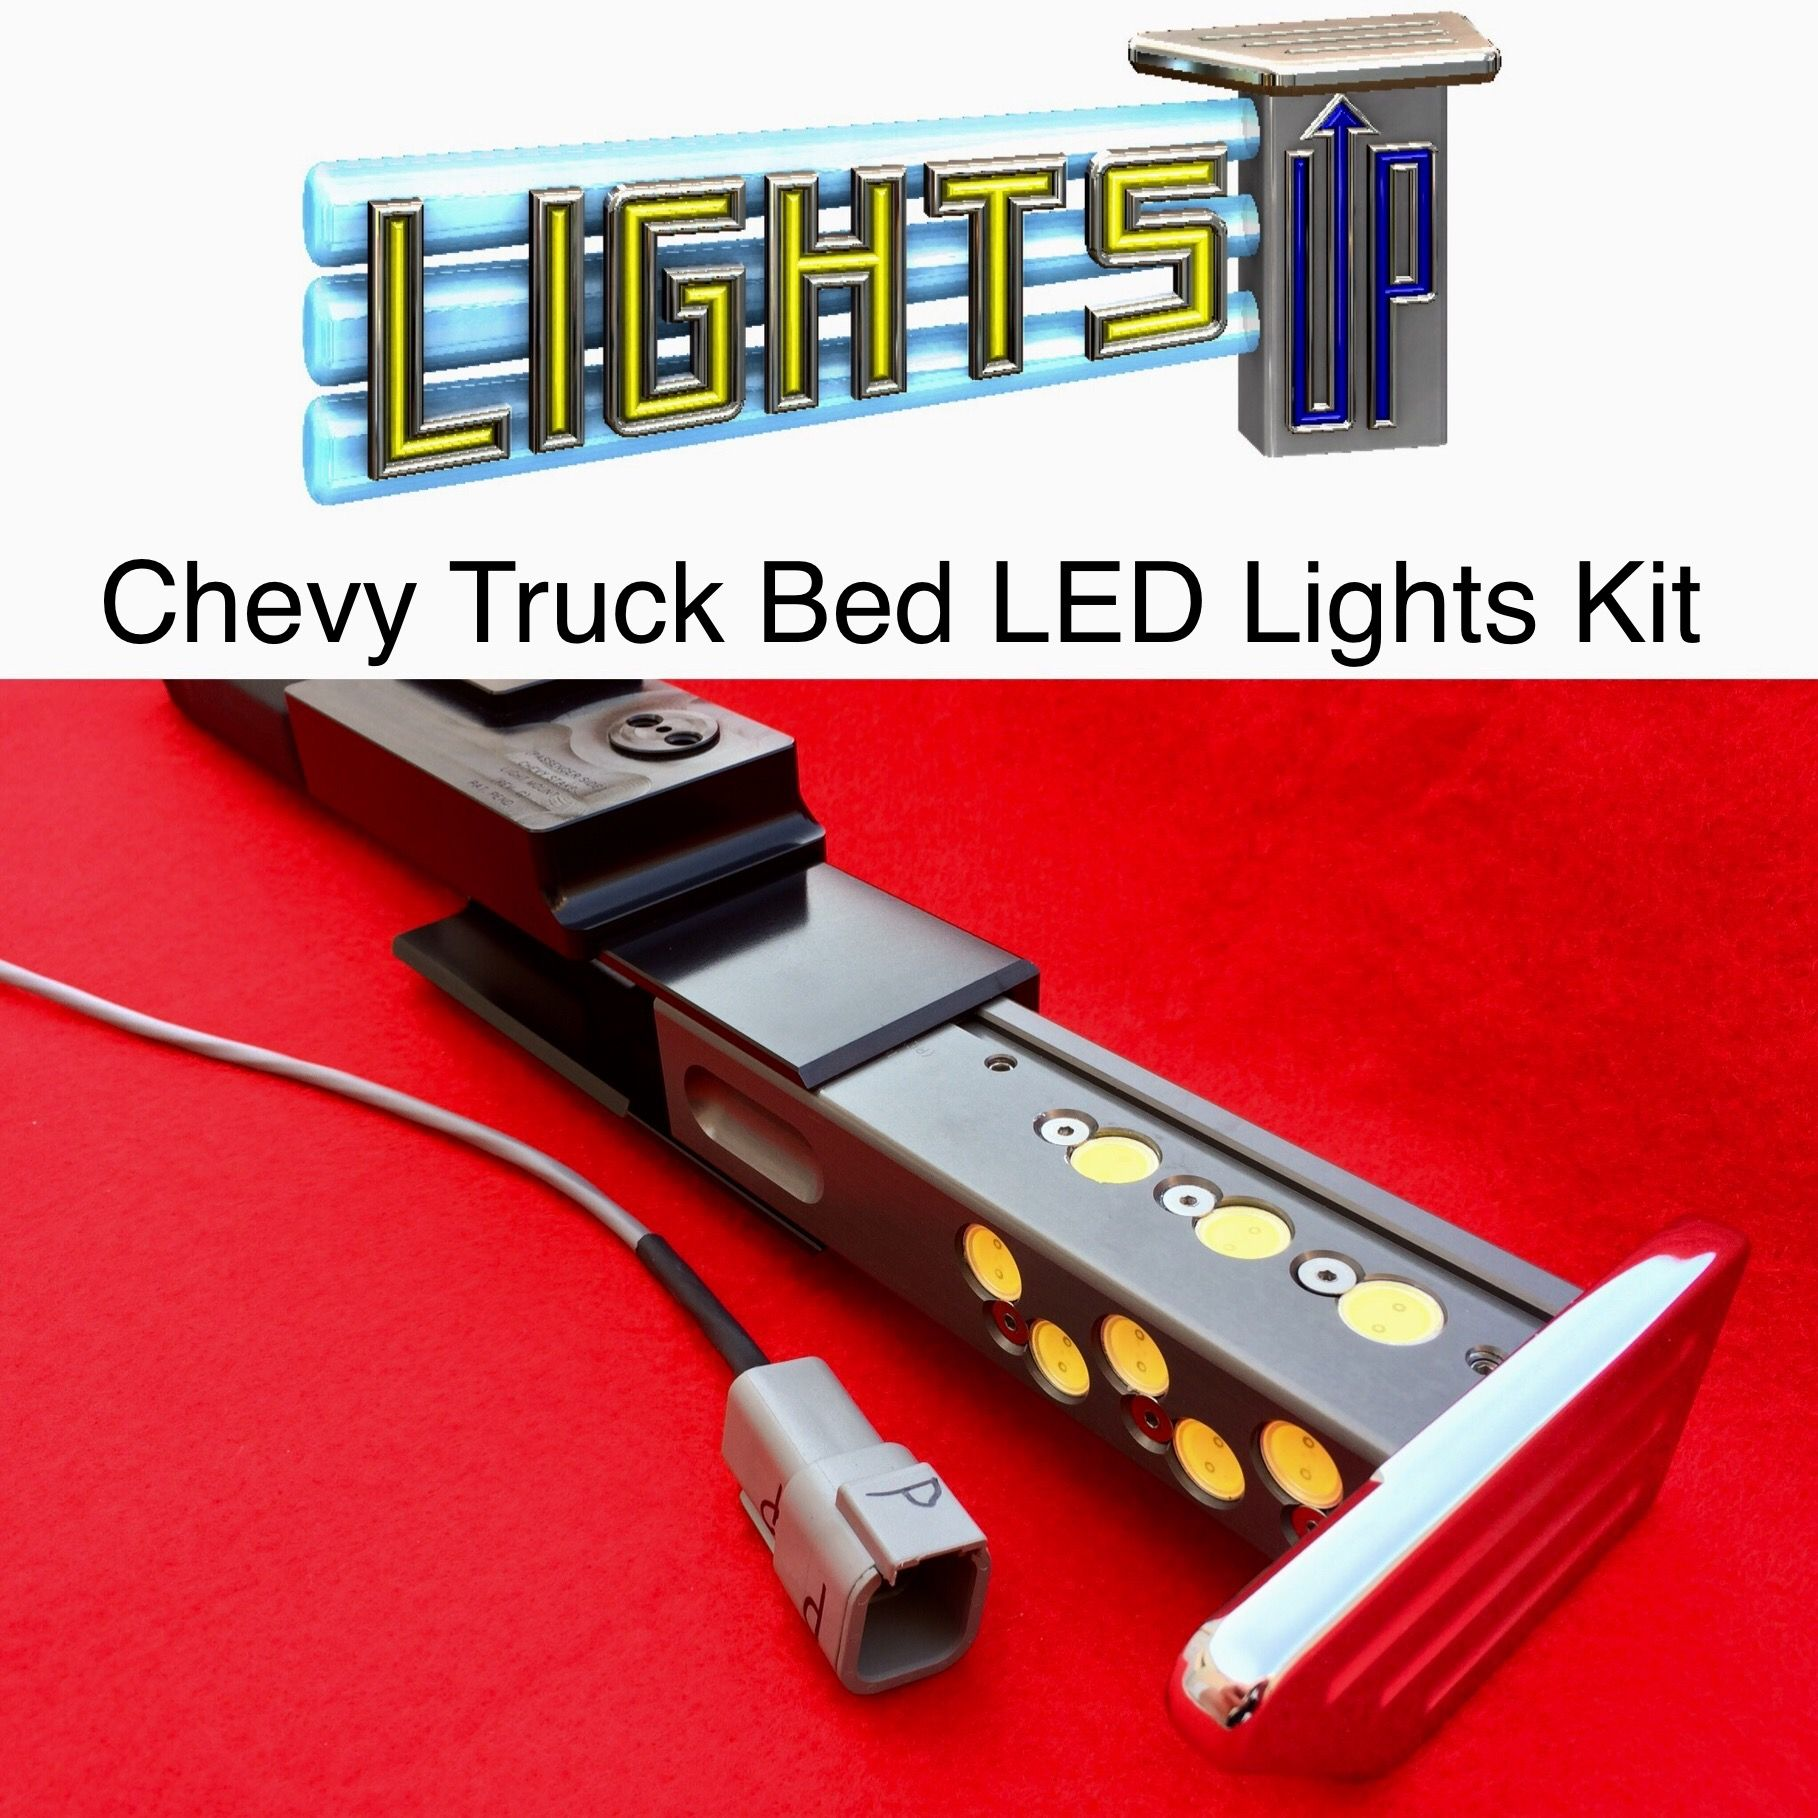 Automatic & KeyLess LED Truck Bed Lights Kit Available